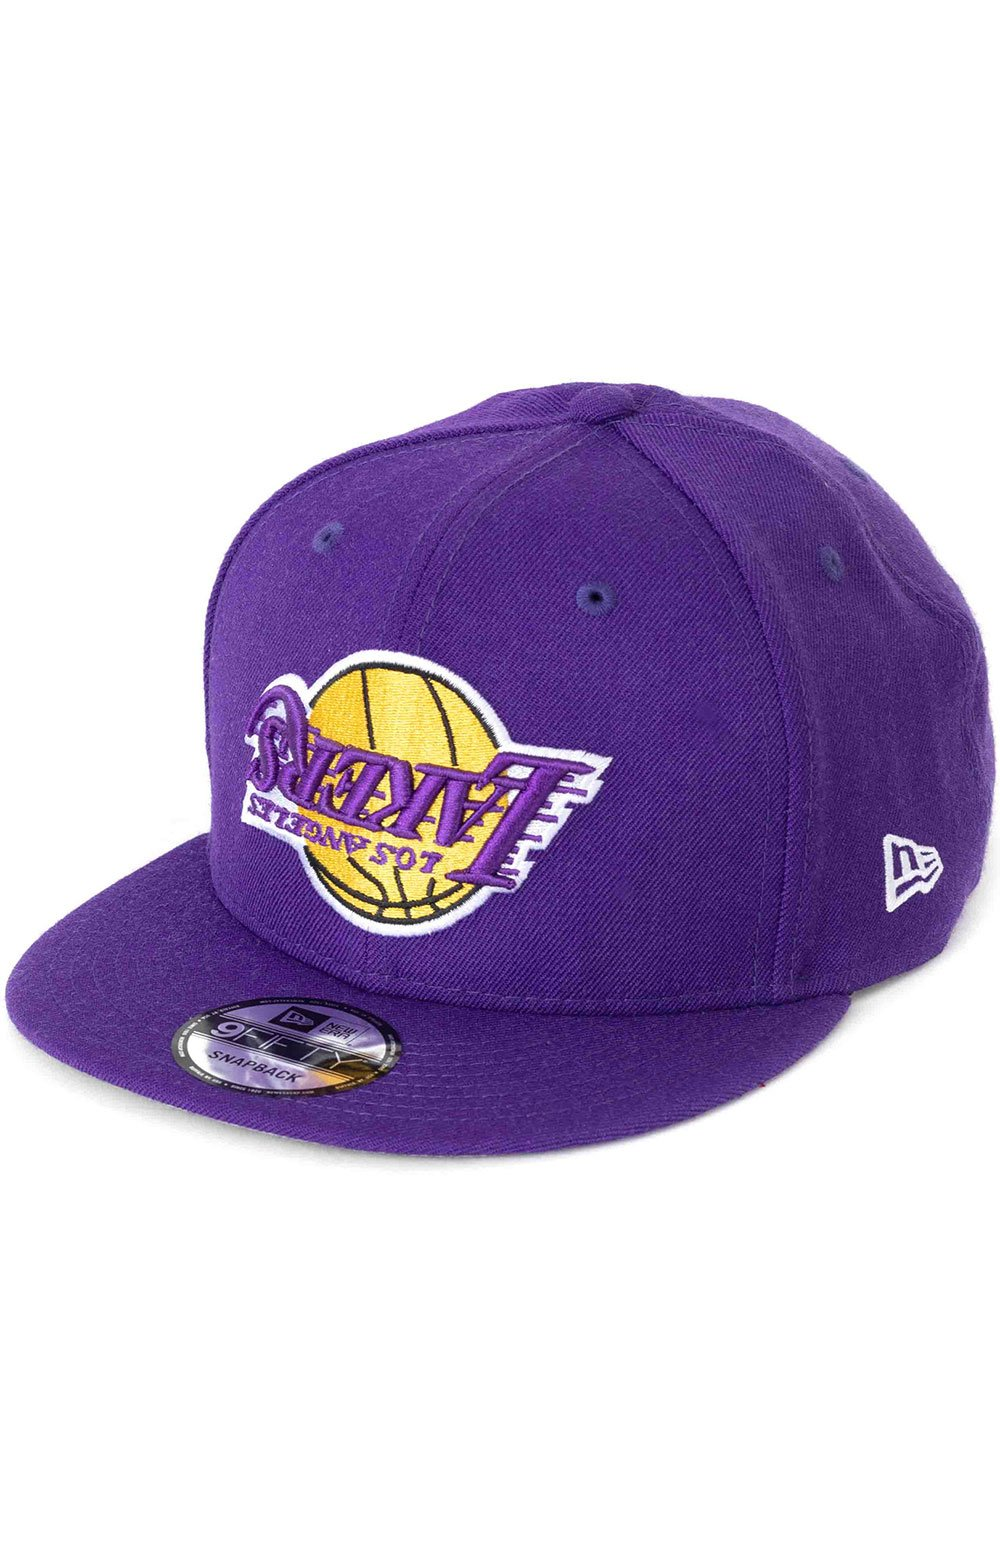 9Fifty Upside Logo Los Angeles Lakers Snap-Back Hat